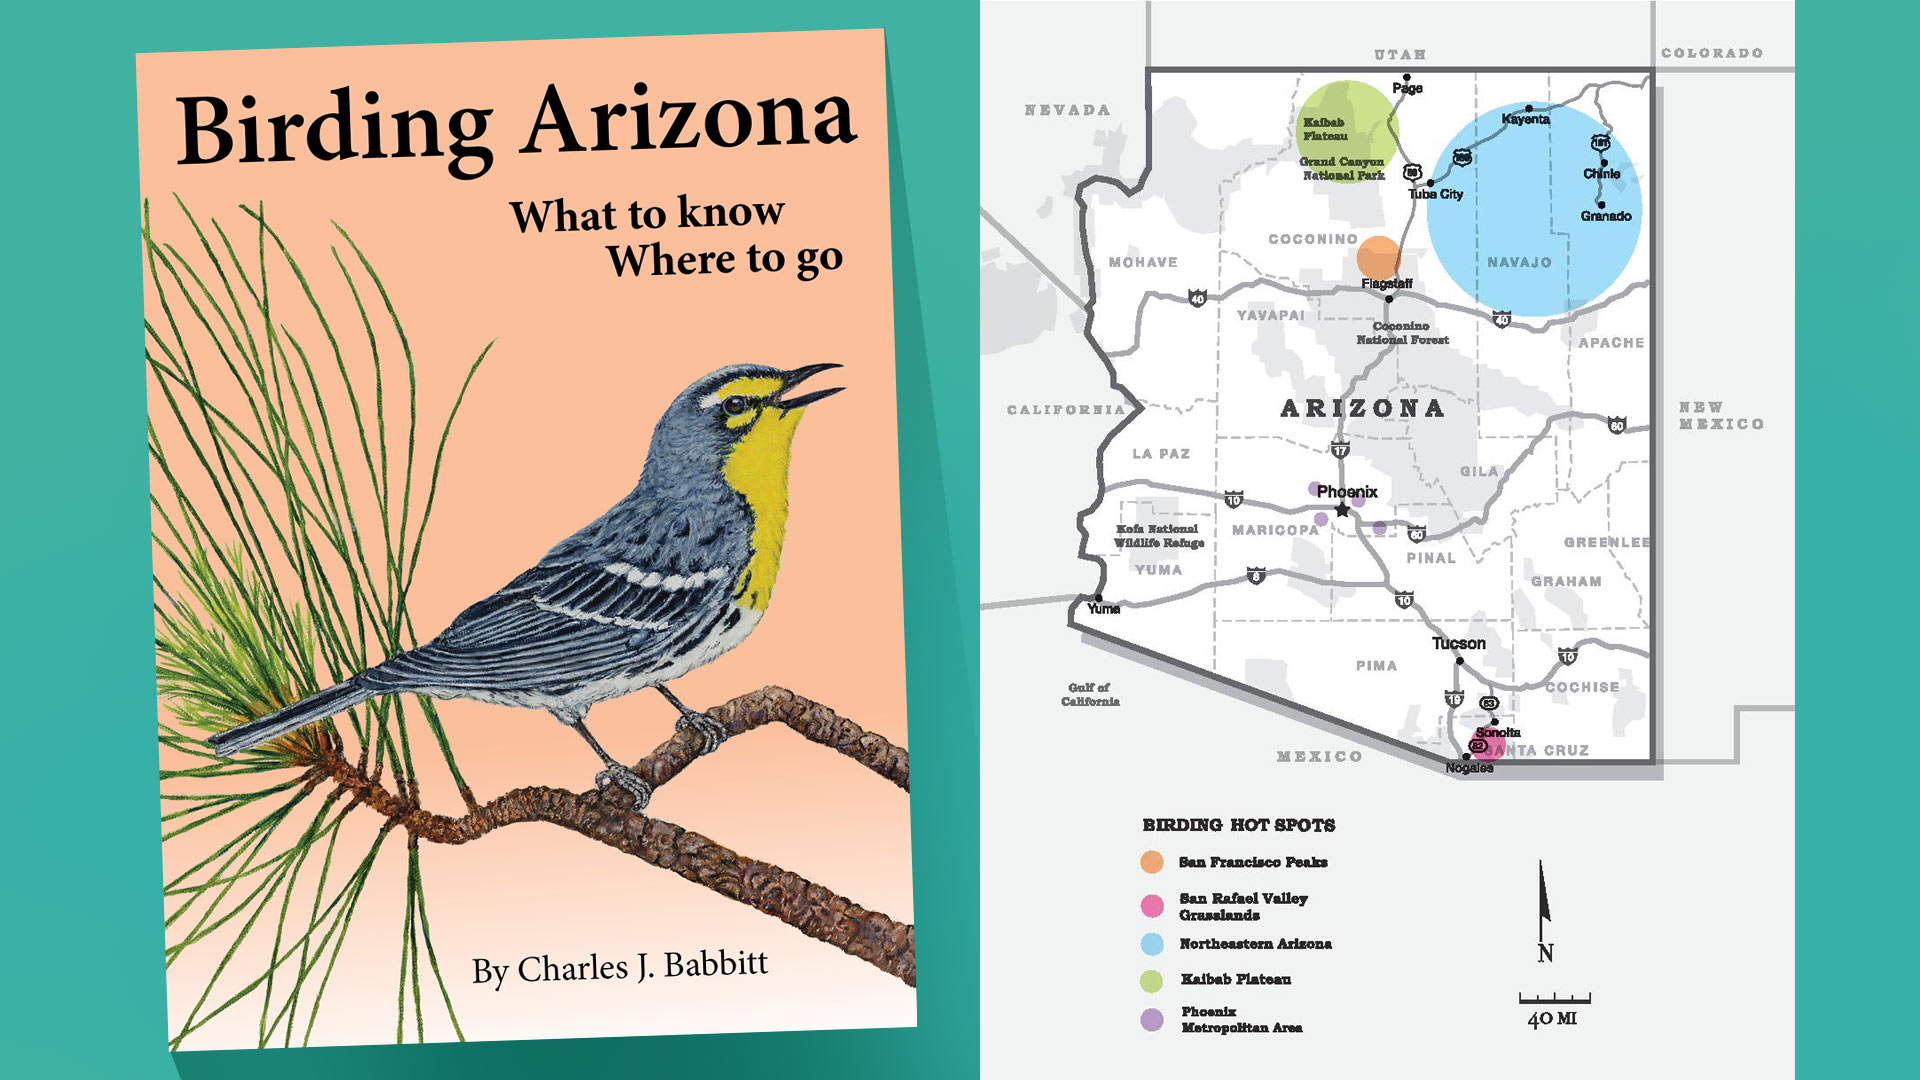 Birding Arizona cover